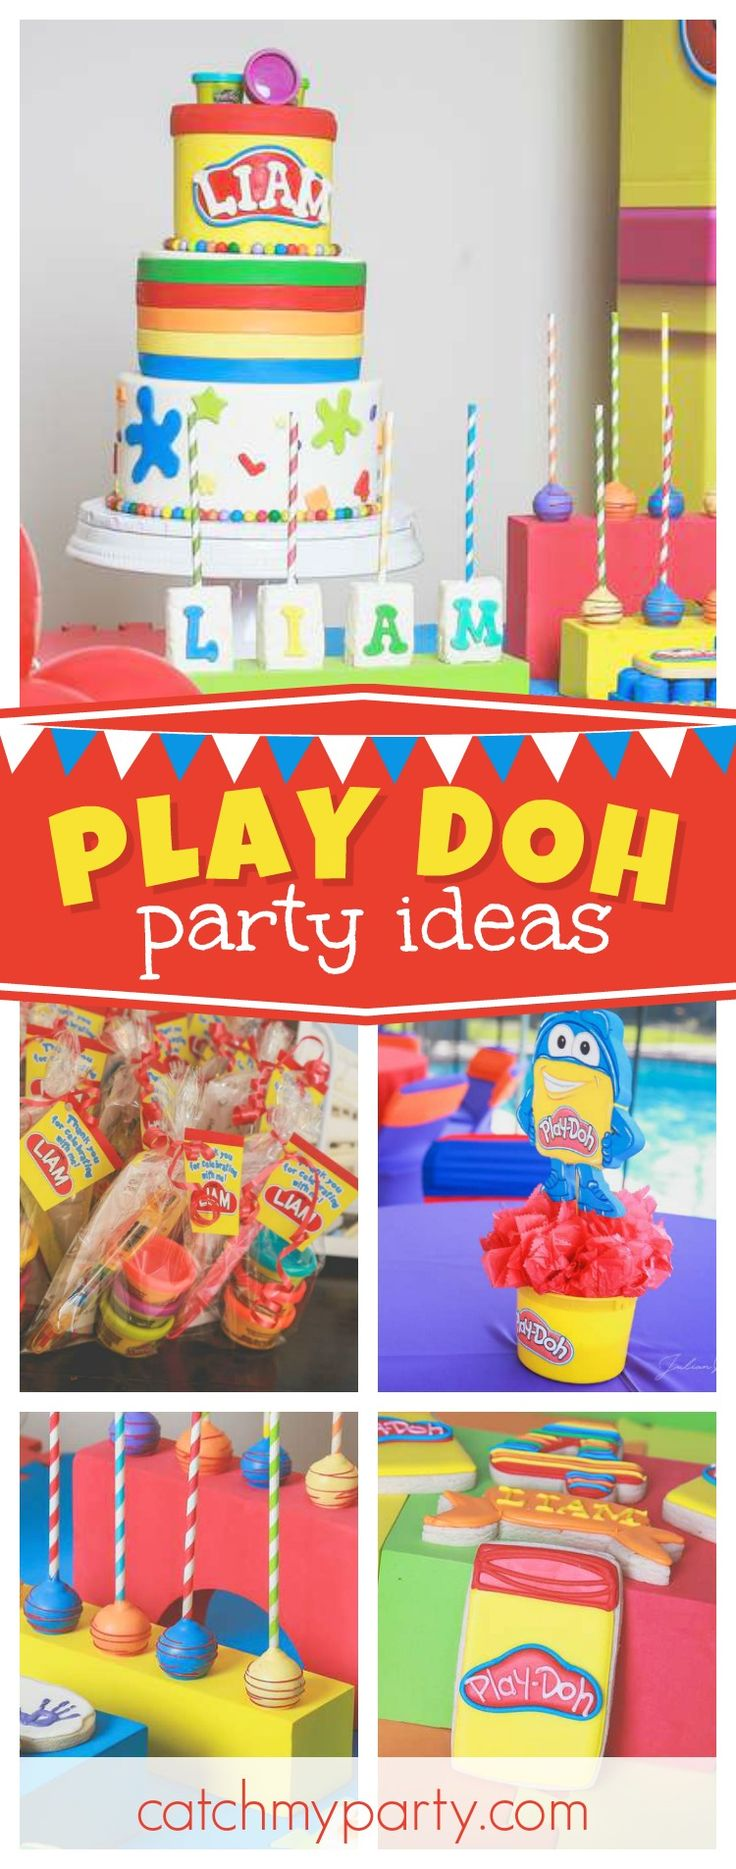 Check out this fun Play Doh birthday party! The birthday cake is awesome!! See more party ideas and share yours at CatchMyParty.com  #partyideas #playpoh #boybirthday